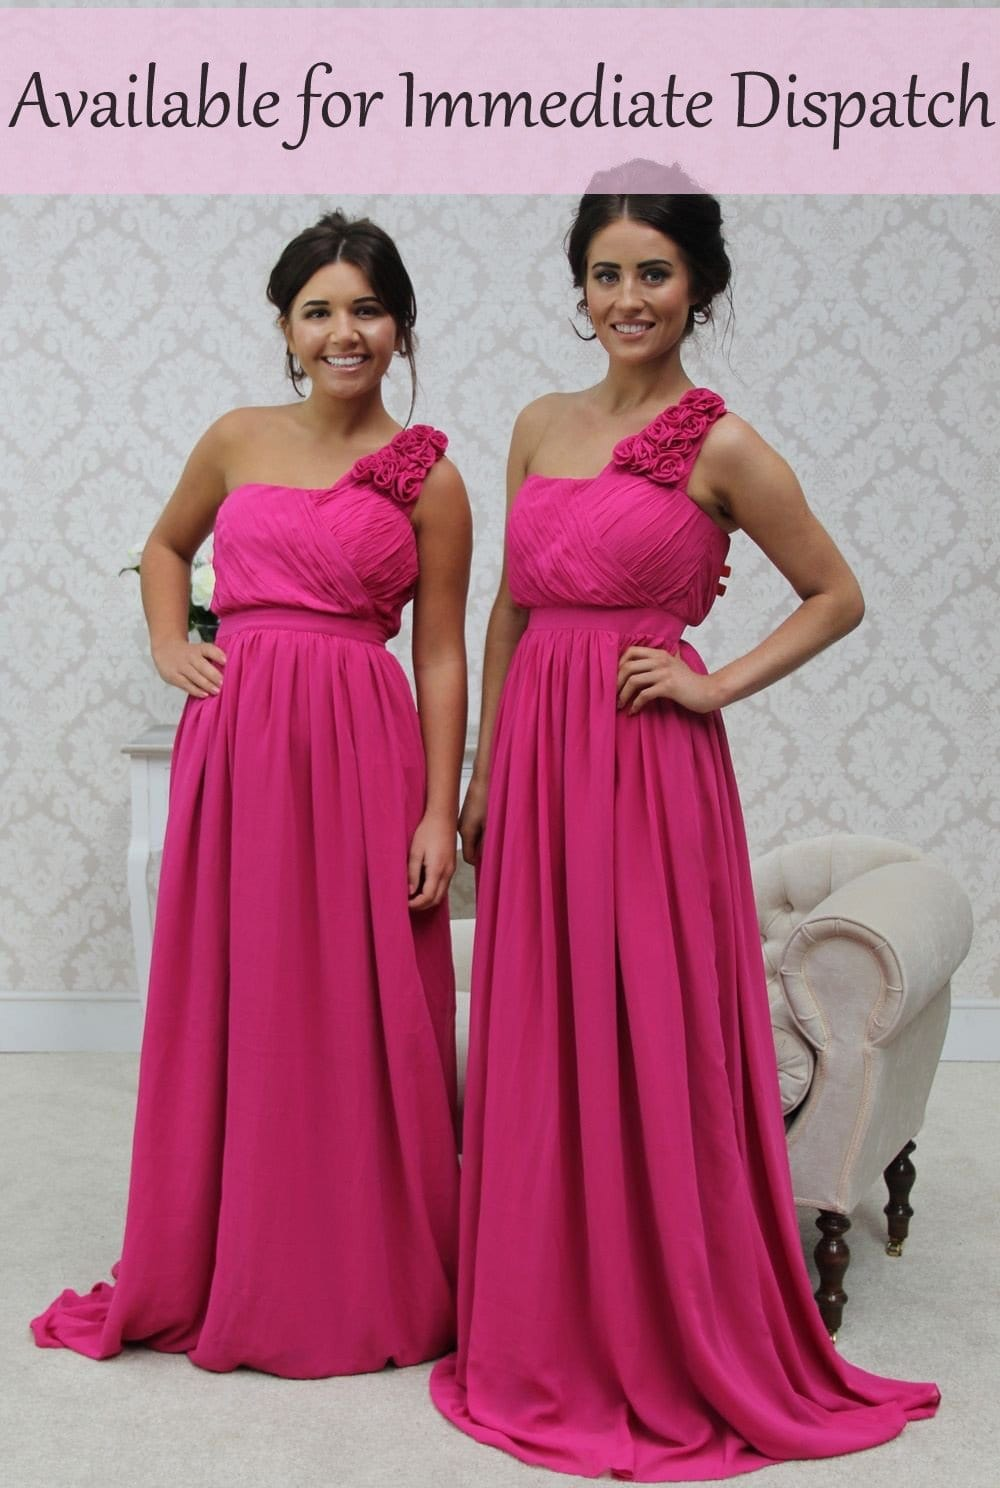 Talia dress that special day bridal warehouse daisy dress 1 shoulder chiffon bridesmaid dress evening gown ombrellifo Gallery